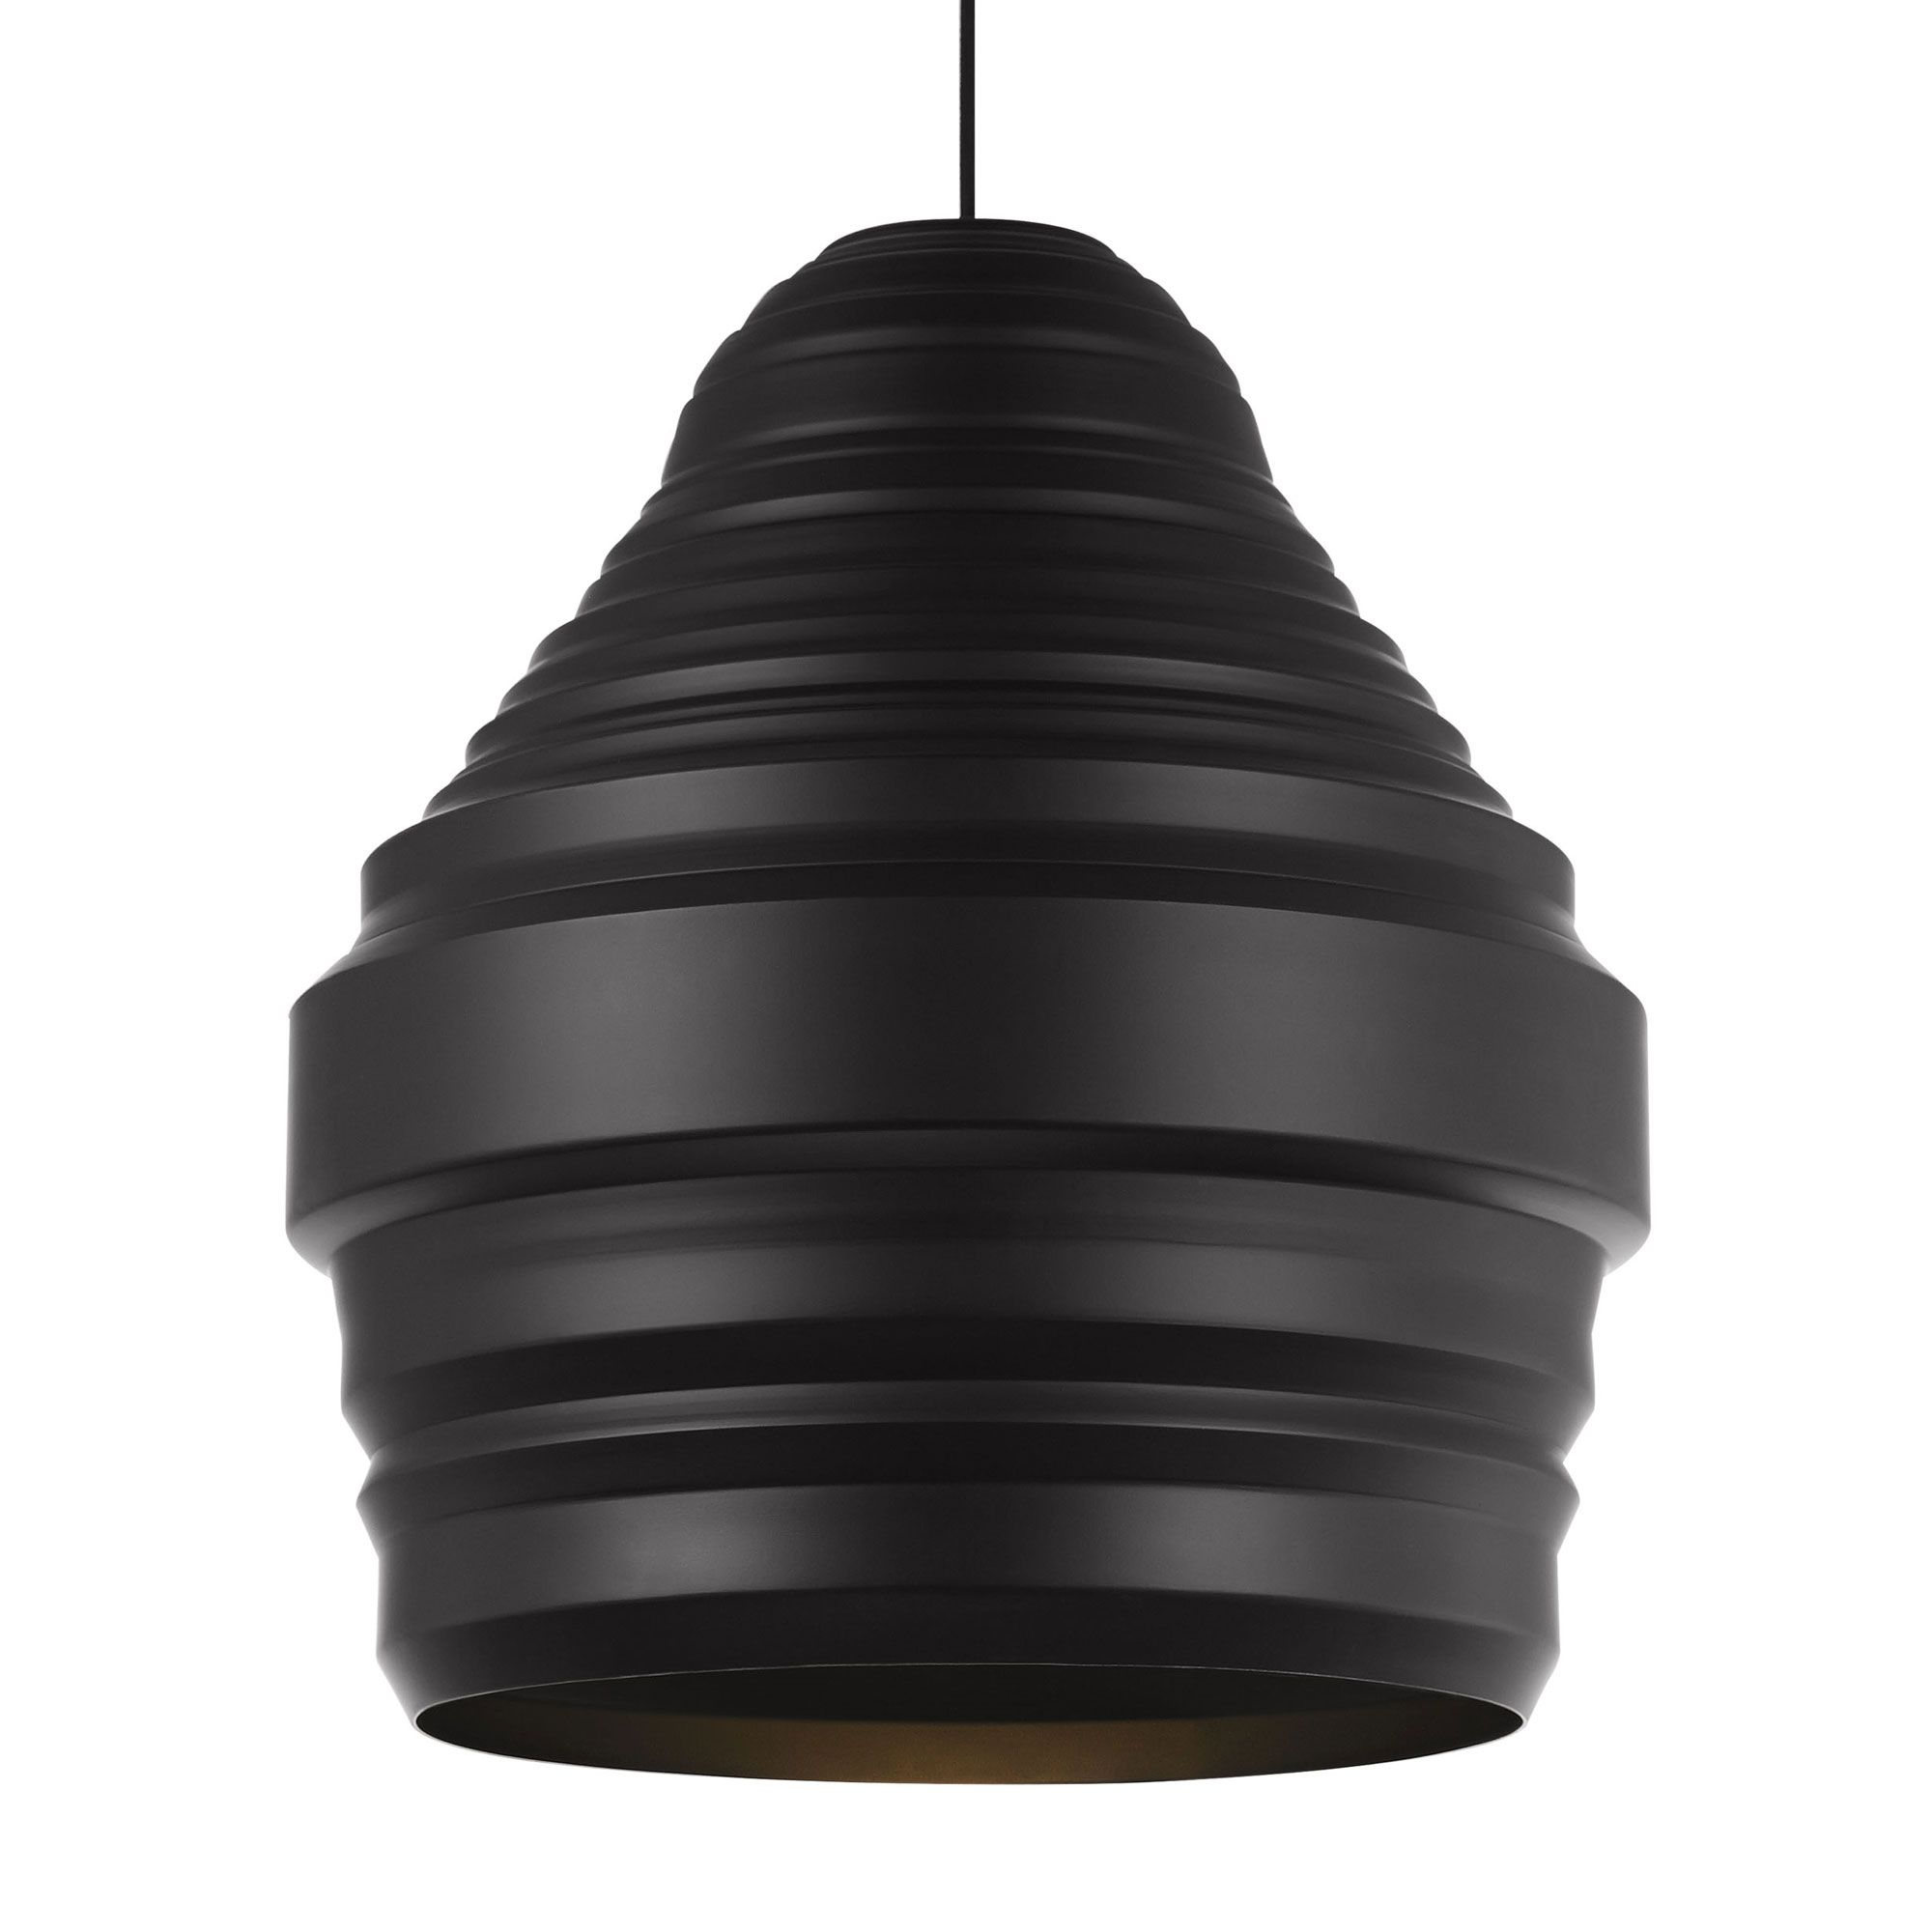 Ryker Pendant, elegantly simple yet visually complex, its